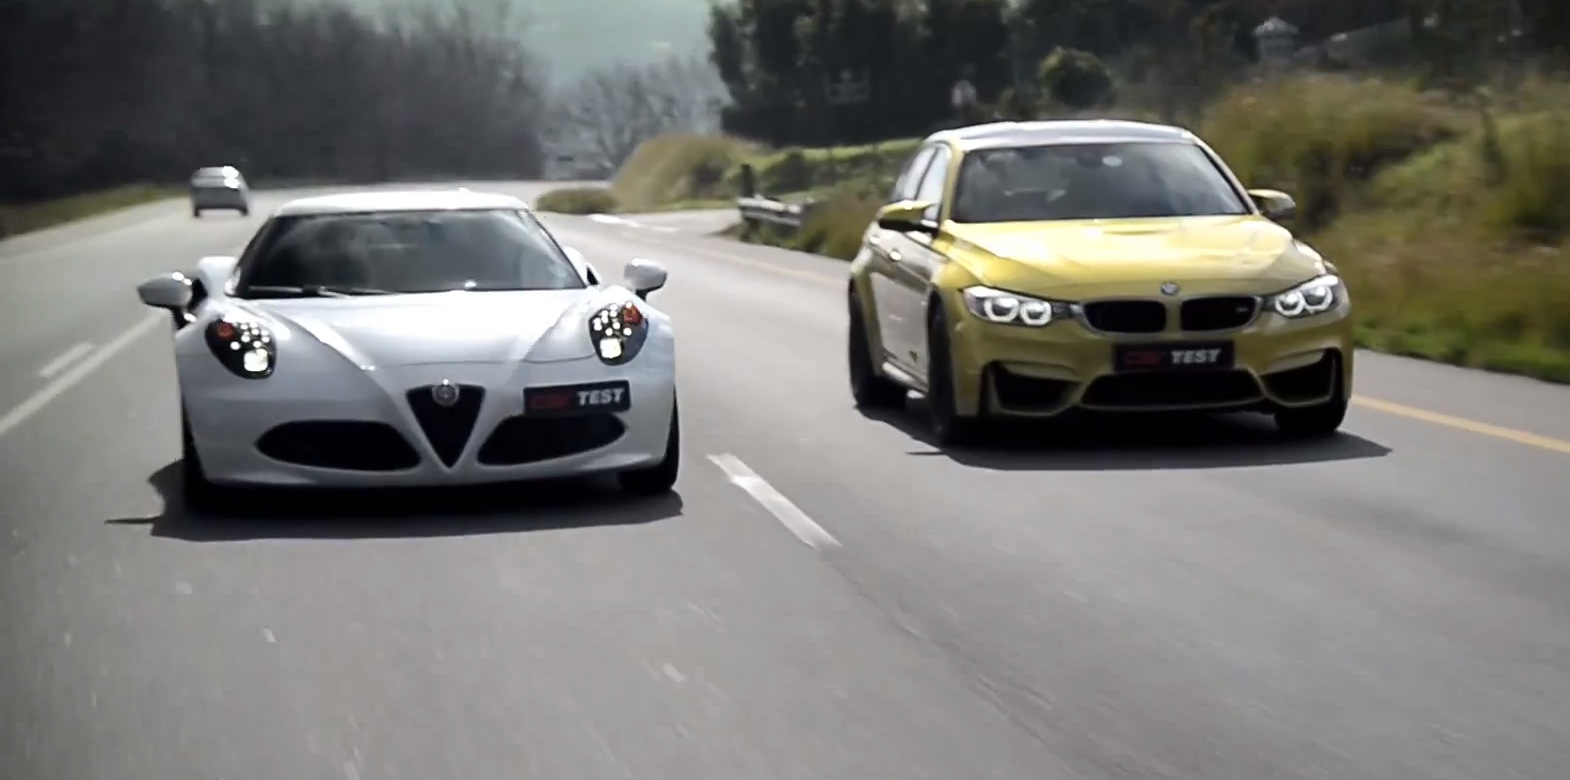 bmw f80 m3 takes on alfa romeo 4c in comparison test autoevolution. Black Bedroom Furniture Sets. Home Design Ideas